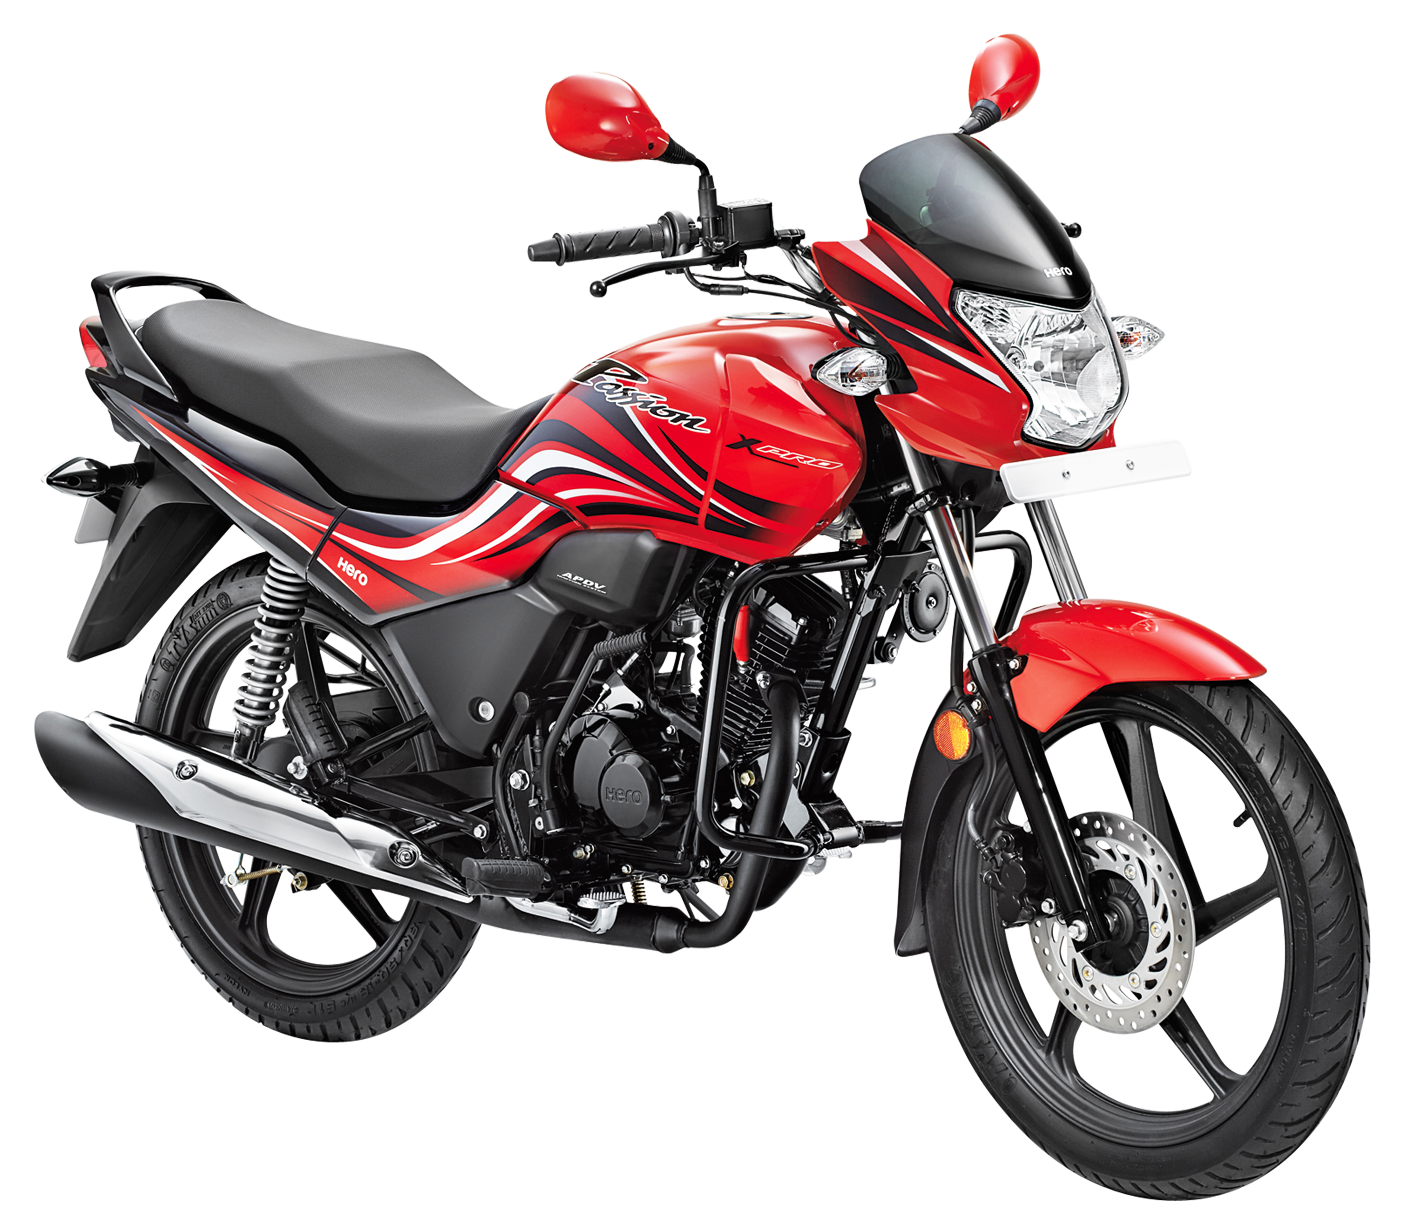 Hero passion xpro bike. Motorcycle clipart red motorcycle